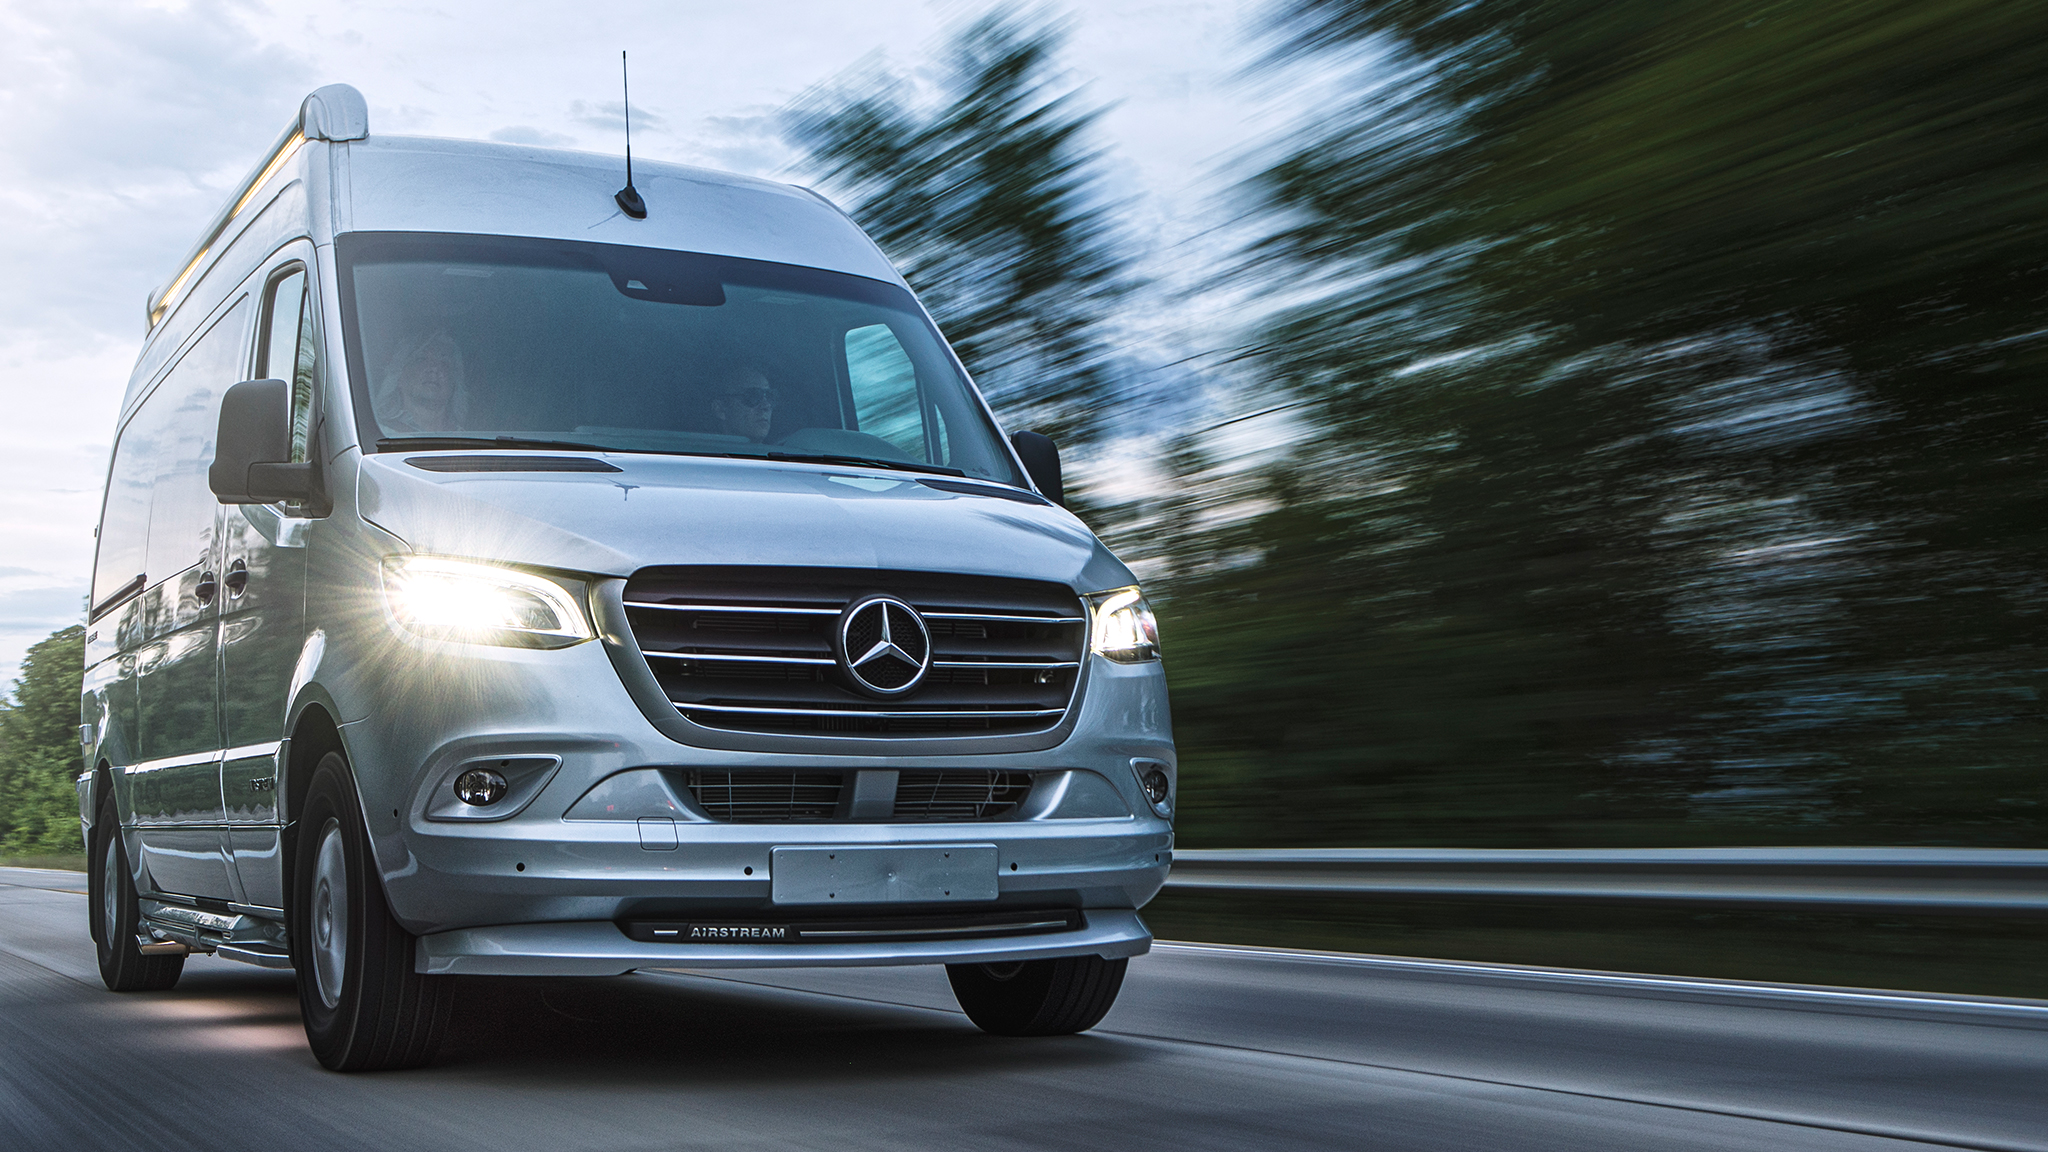 Airstream Touring Coaches   Class B and C Luxury Mercedes-Benz RVs